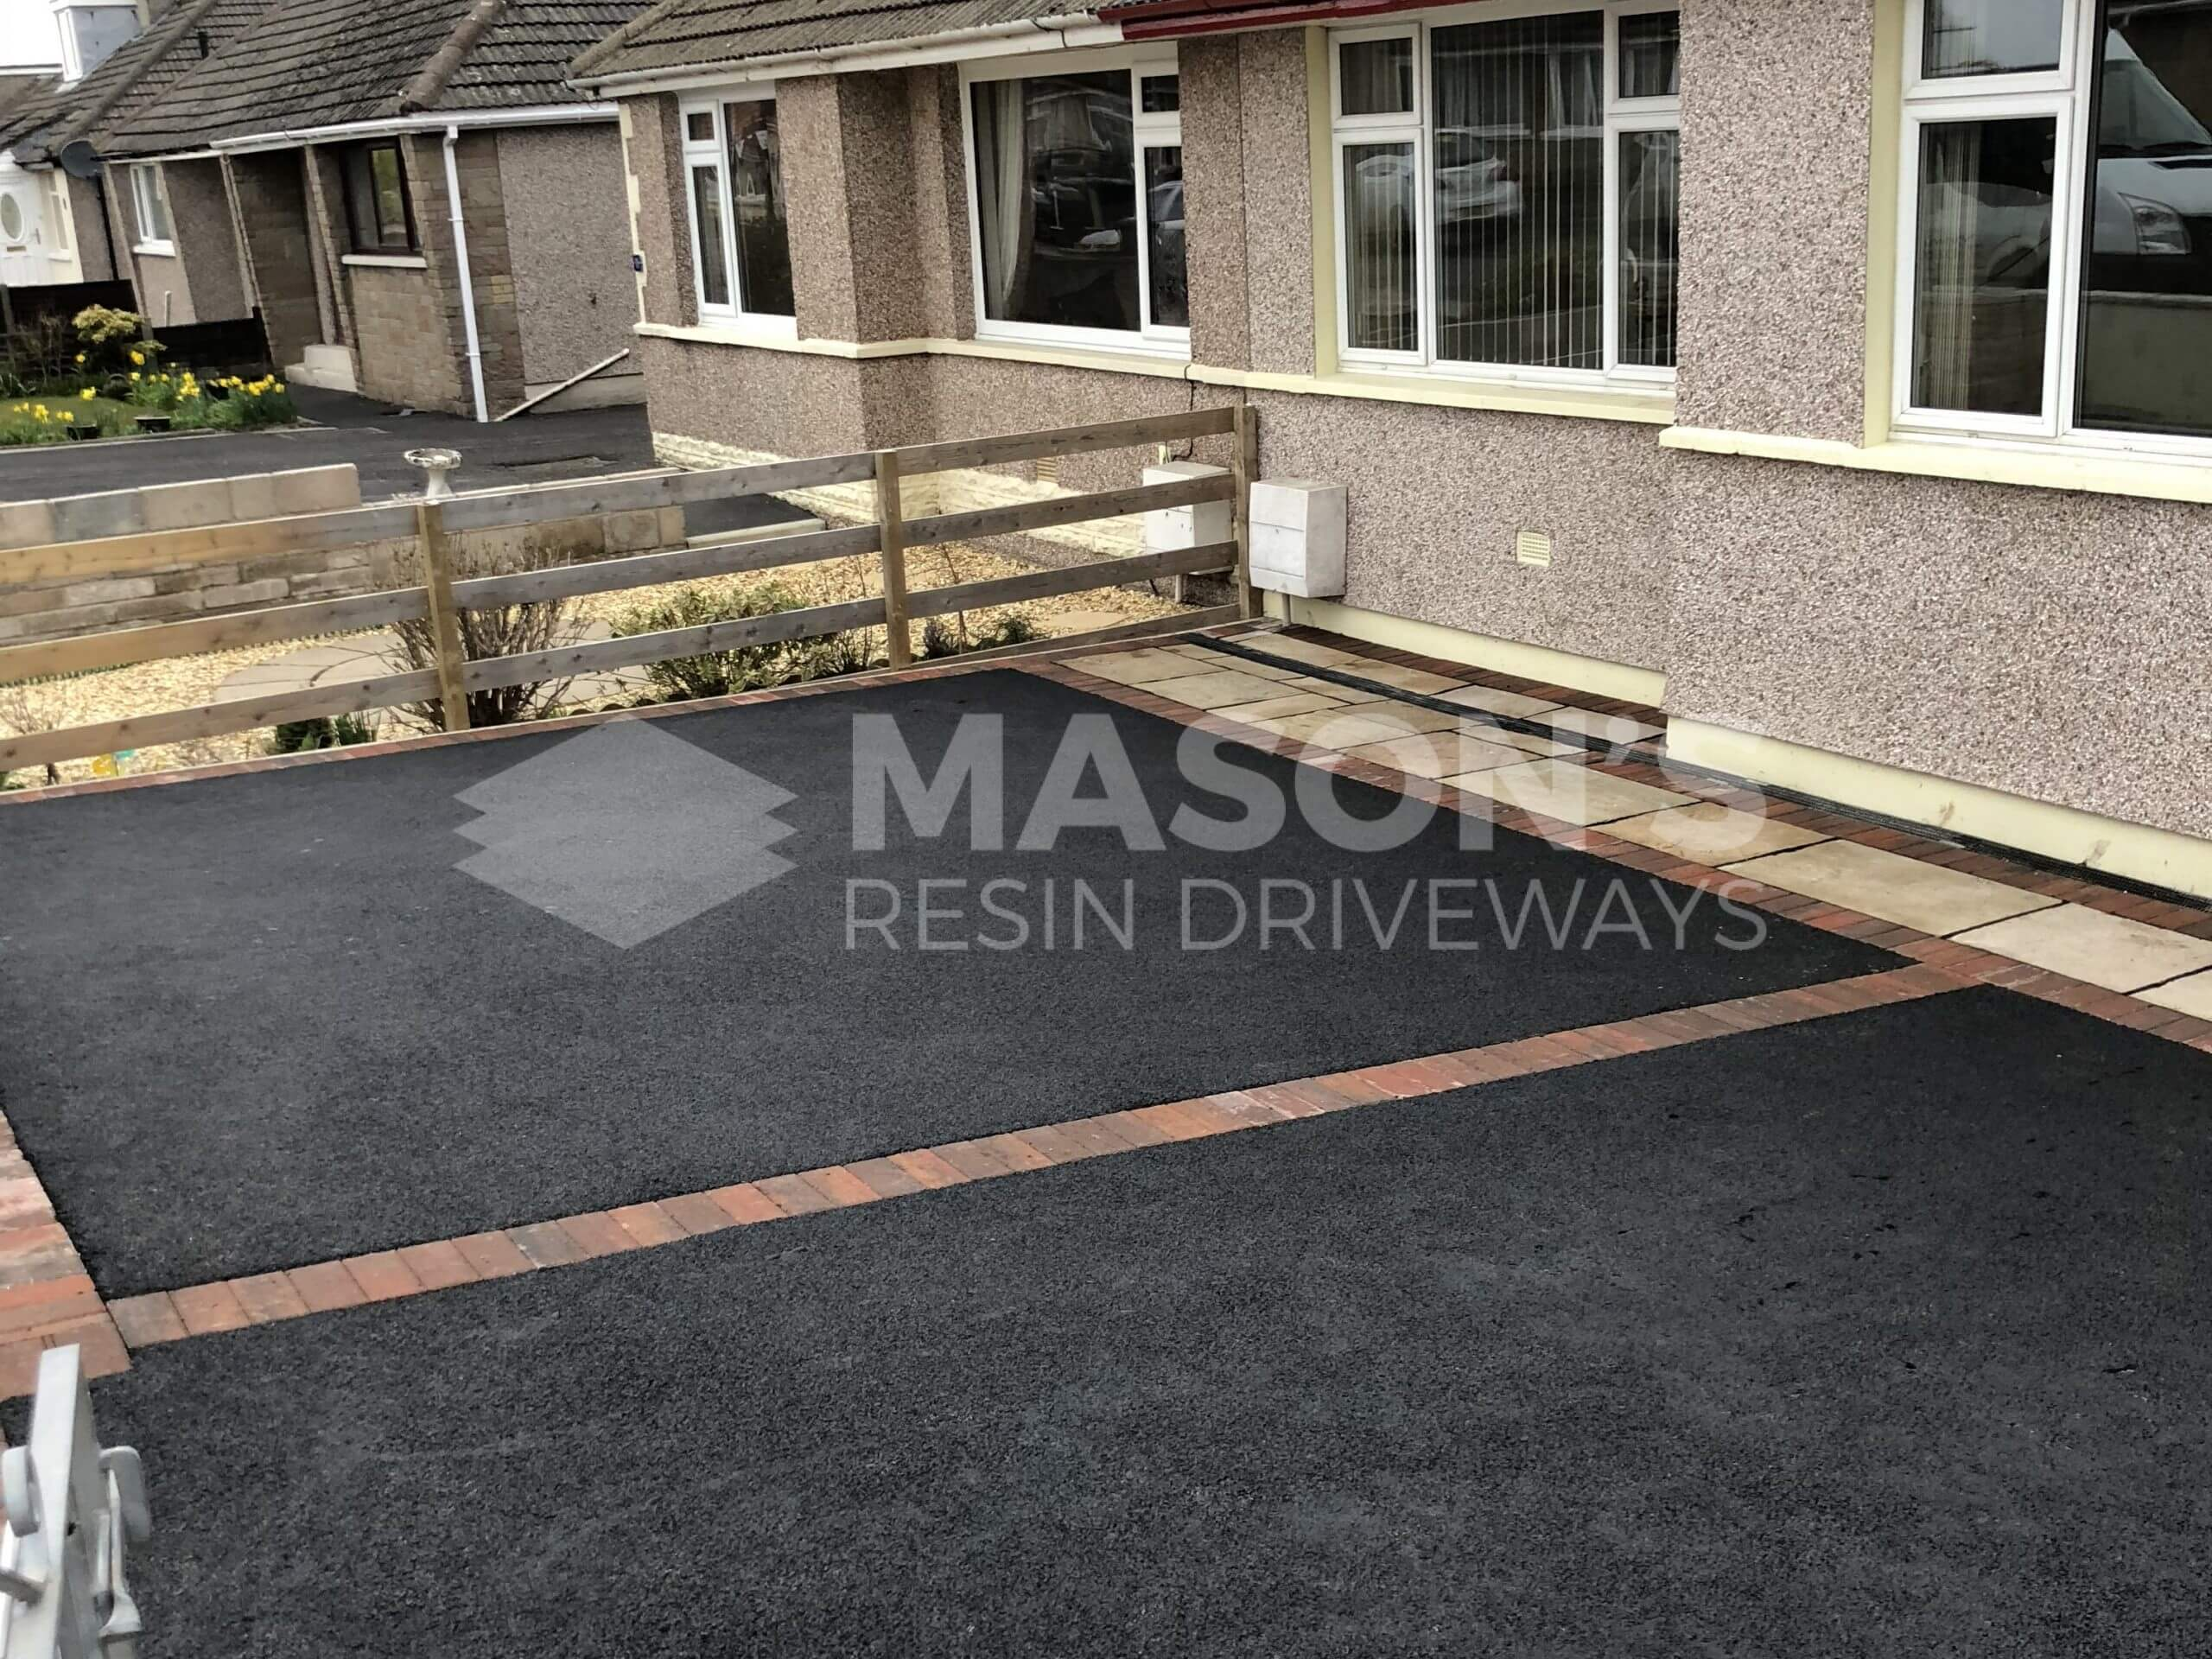 Tarmac Driveway with Indian Sandstone in Preston, Lancashire